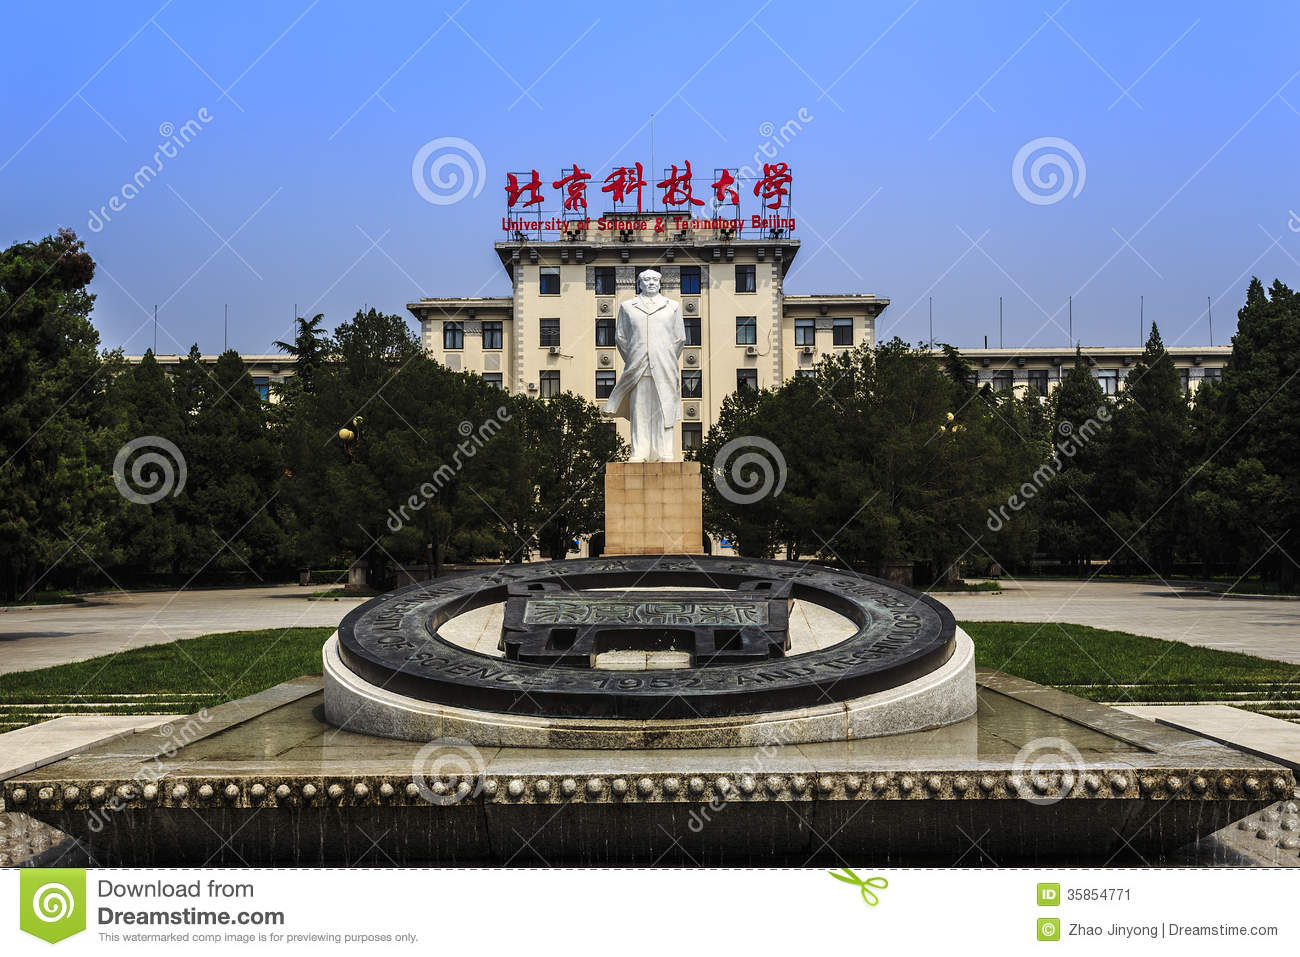 beijing university of science and technology stock image